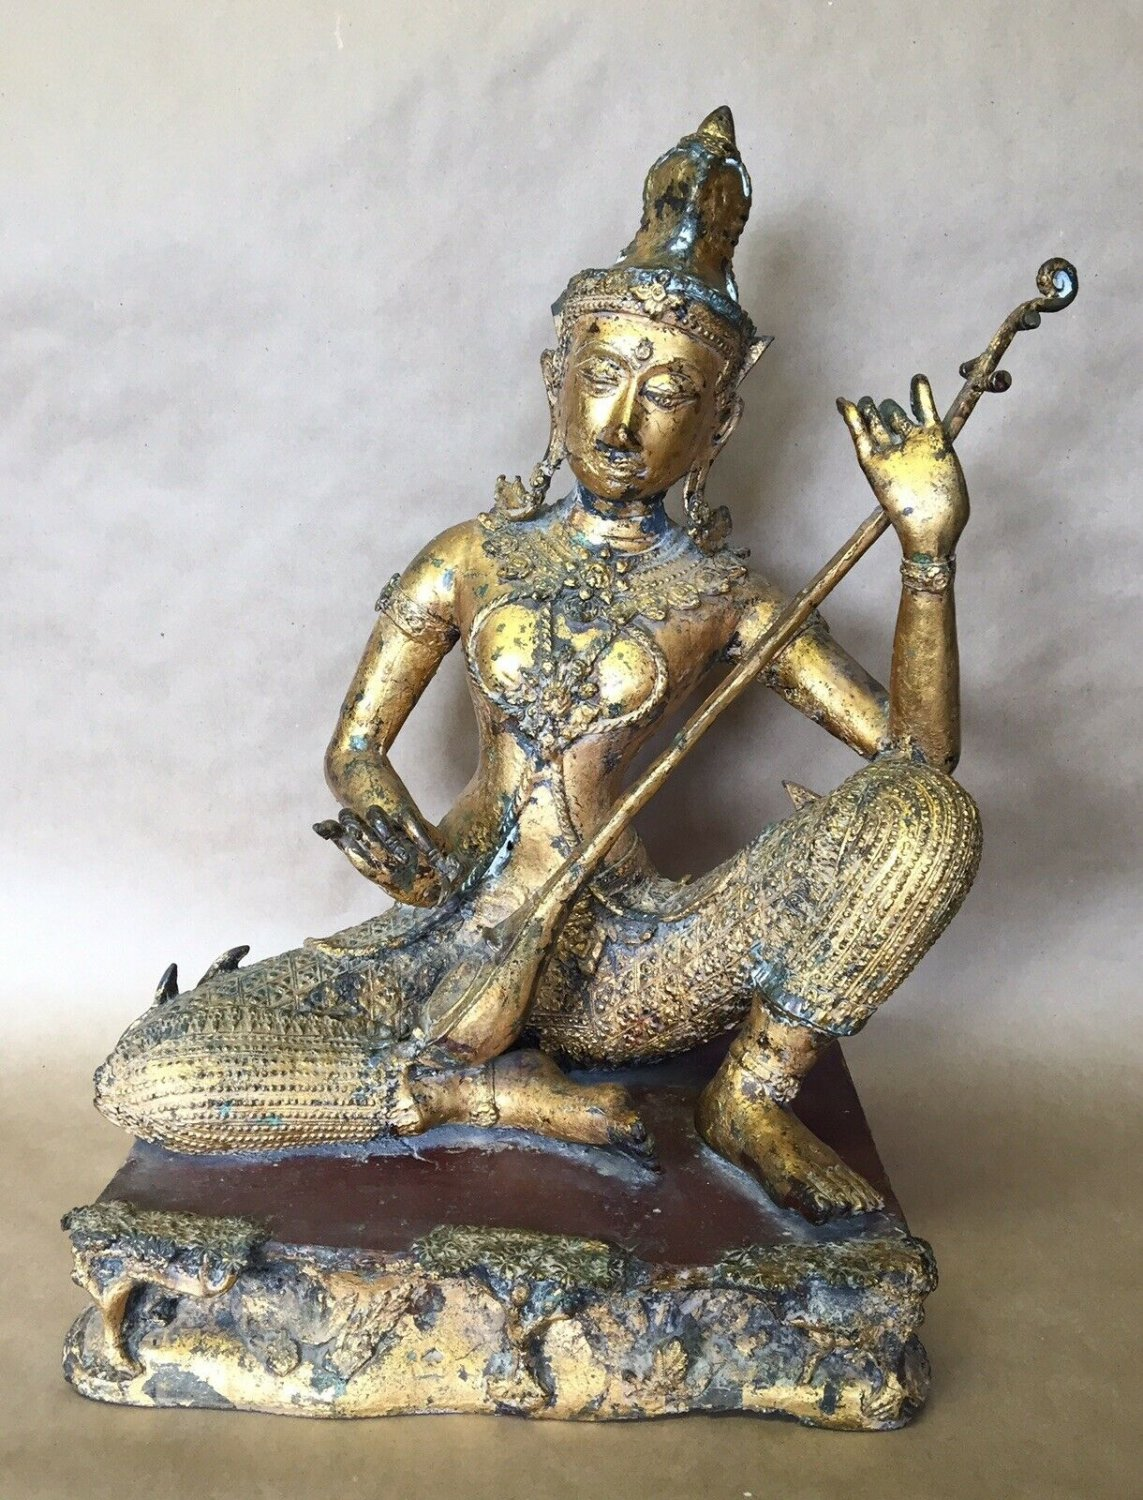 ANTIQUE THAI BUDDHA PLAYING INSTRUMENT SCULPTURE STATUE GOLD GUILTED BRONZE 17c